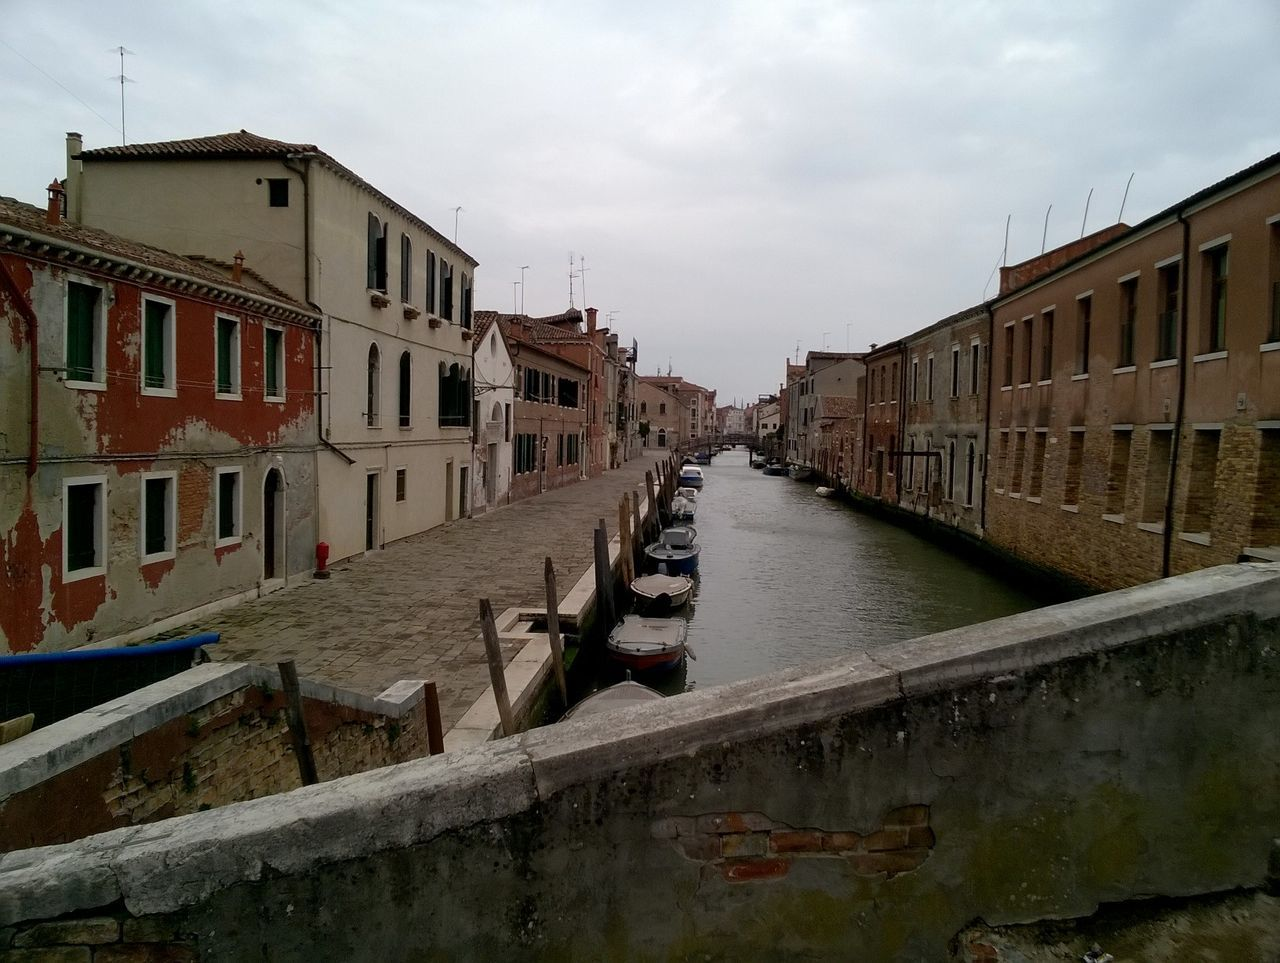 Abbandono Canal Cityscape Desolation Empty Road Gloomy Day Solitude Spopolamento